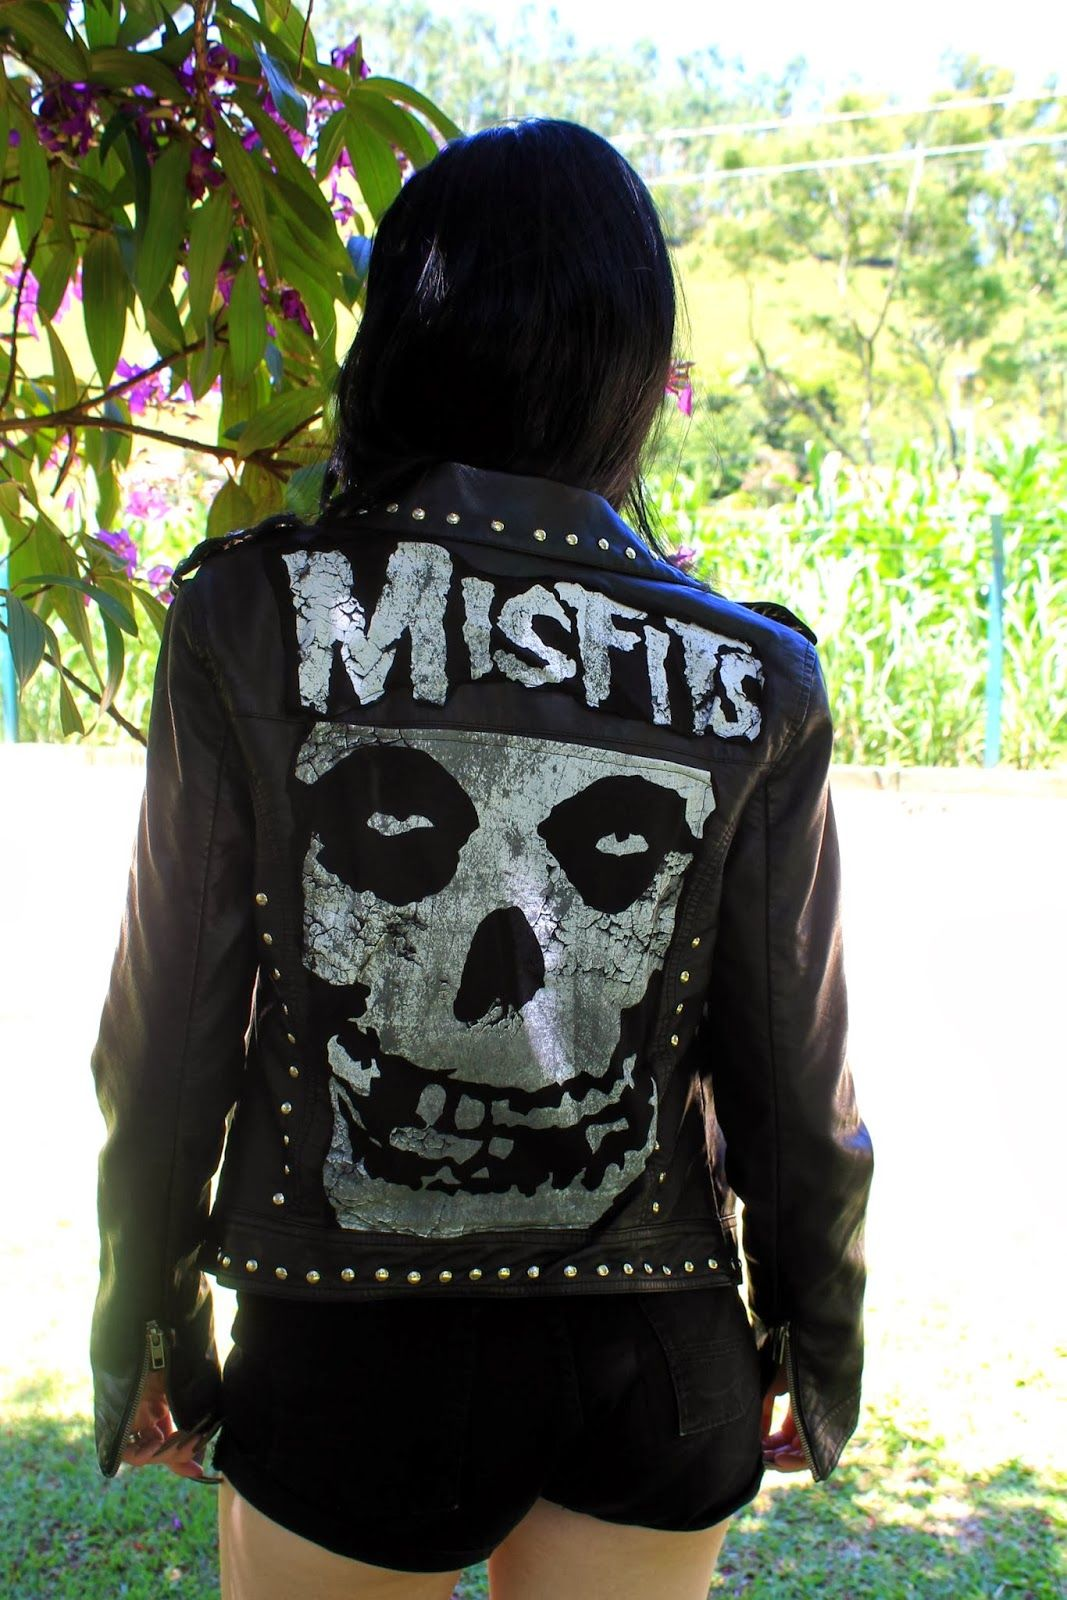 Misfits leather jacket.